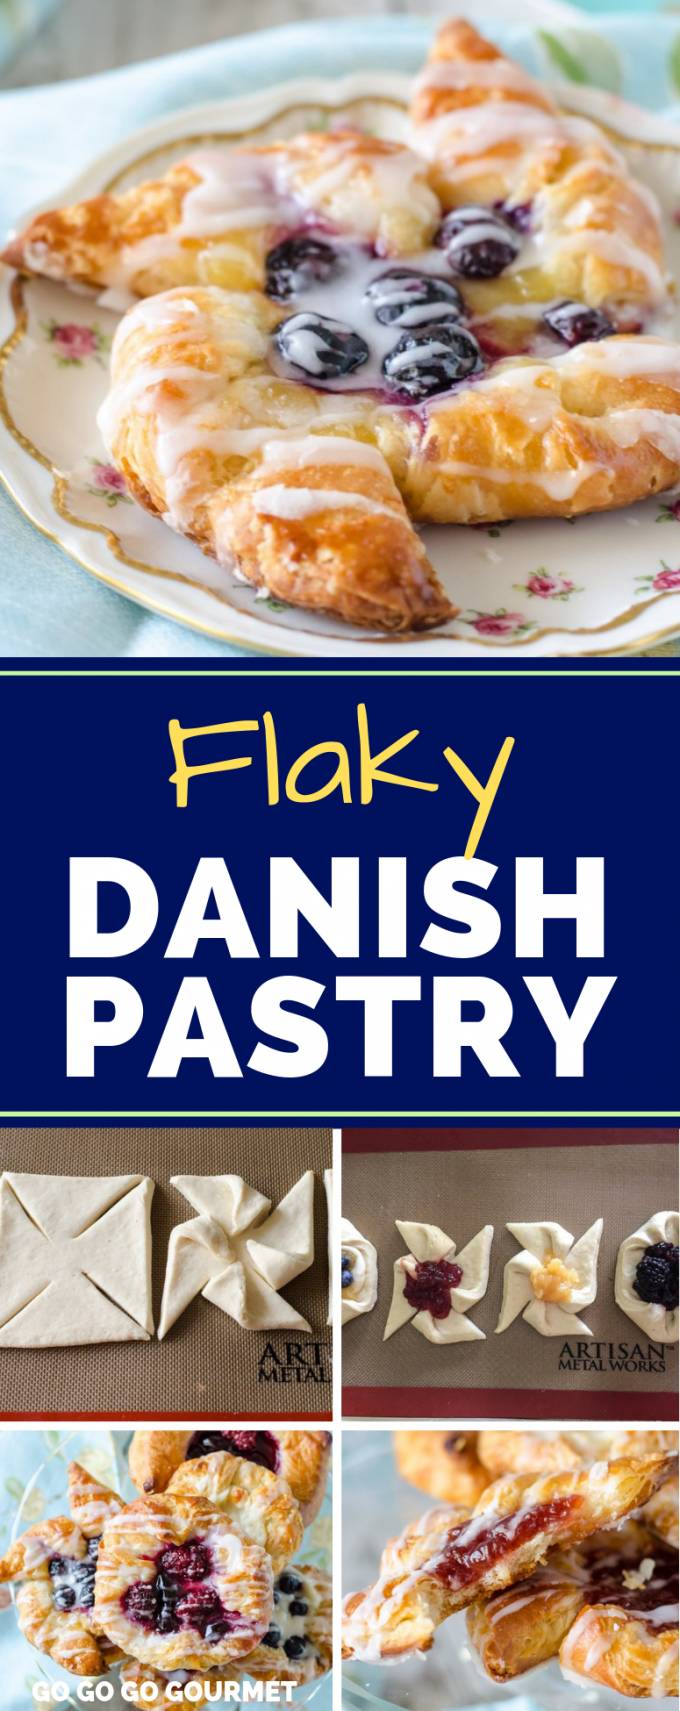 These flaky Danish pastries use an easy homemade dough recipe (for either crescent rolls or croissants!) You can use any type of filling and any number of shapes for this traditional breakfast treat! #gogogogourmet #flakydanishpastry #danishpastry #breakfastpastry  via @gogogogourmet